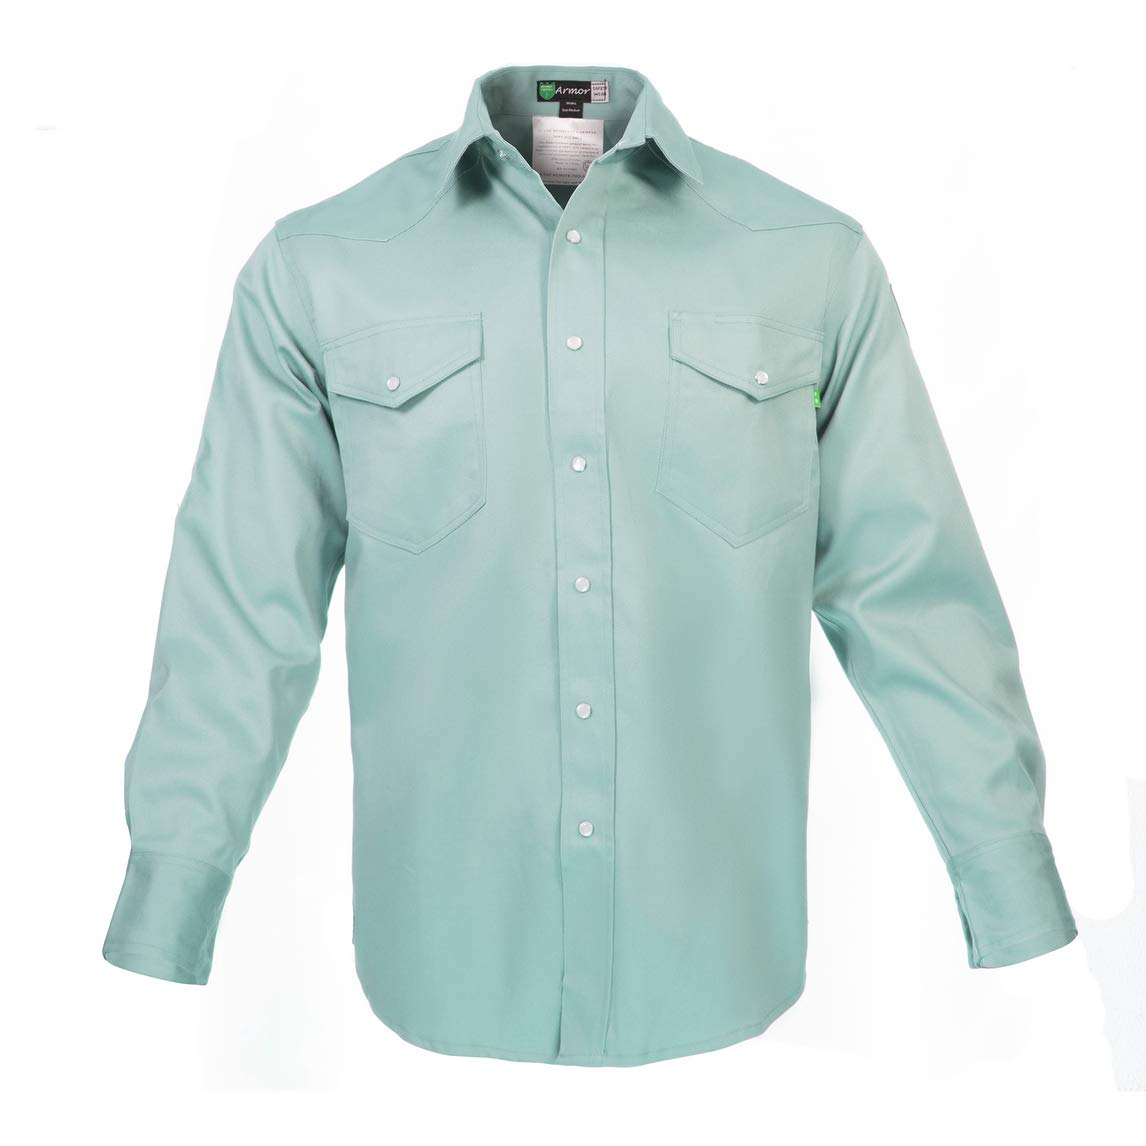 Flame Resistant FR Shirt - Heavy Weight - 100% C - 9 oz (3X Large, Welders Green) by Just In Trend